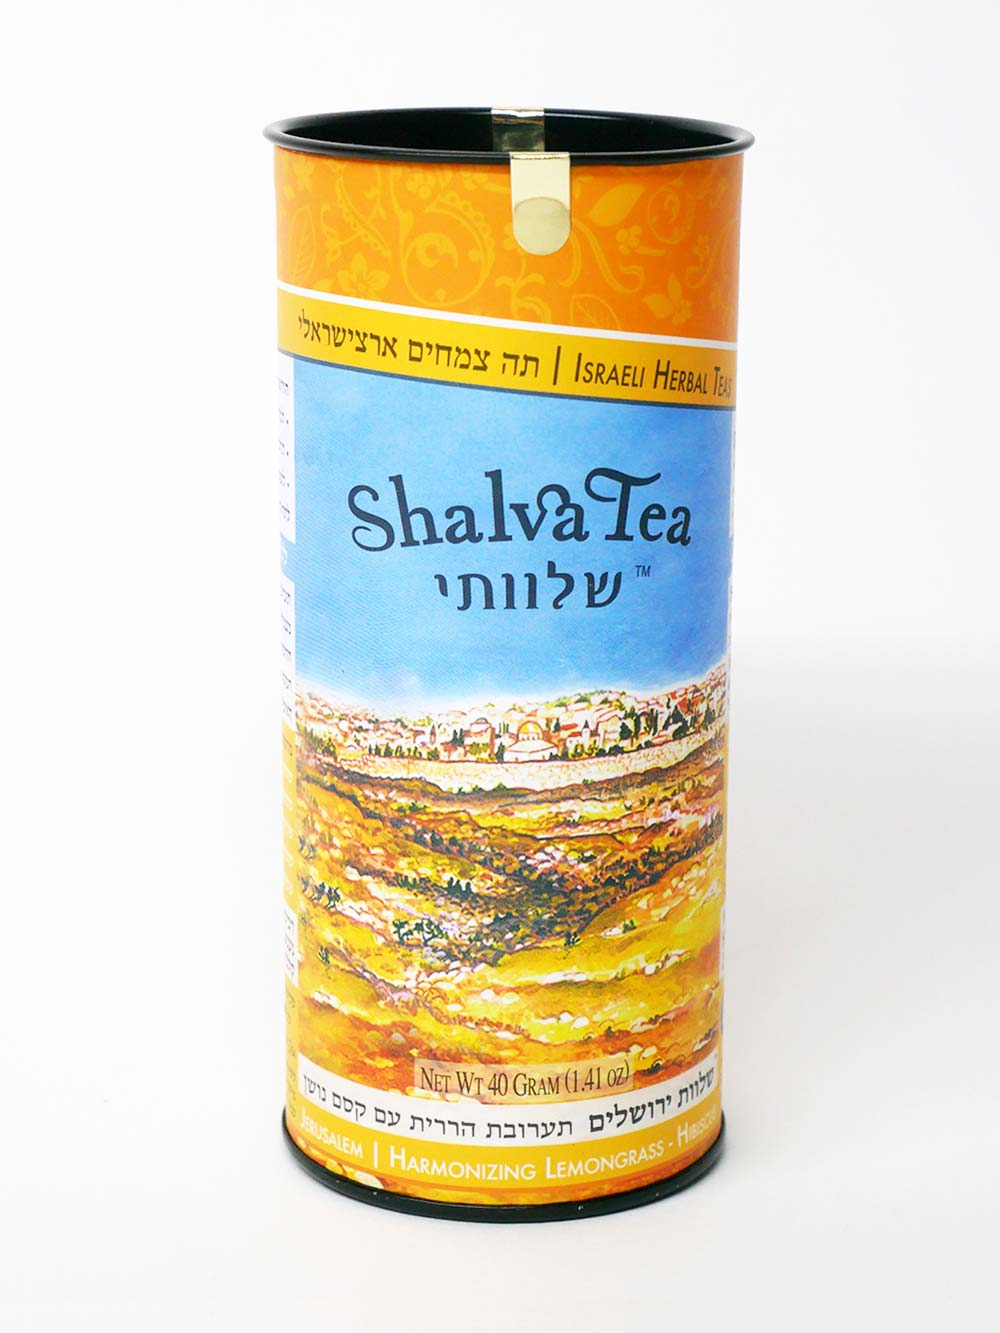 Harmonizing Lemongrass-Hibiscus | Jerusalem Blend (20 Teabags) - ShalvaTea Kosher Israeli Herbal Teas